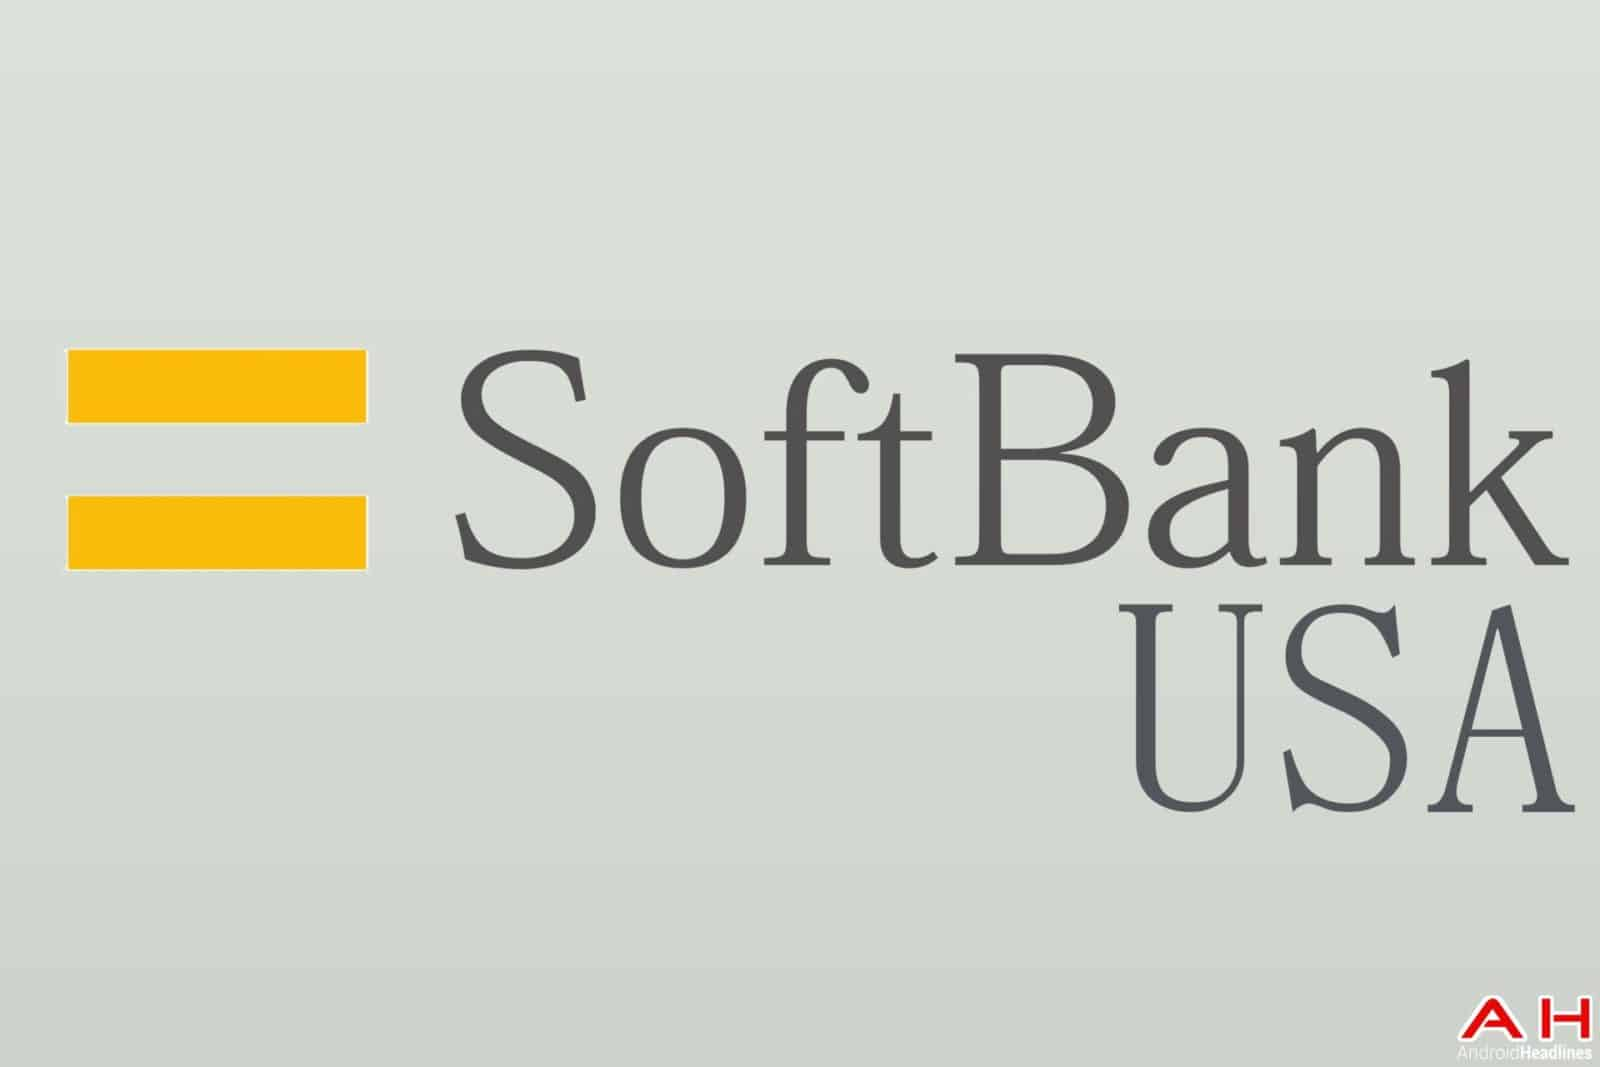 AH Softbank USA